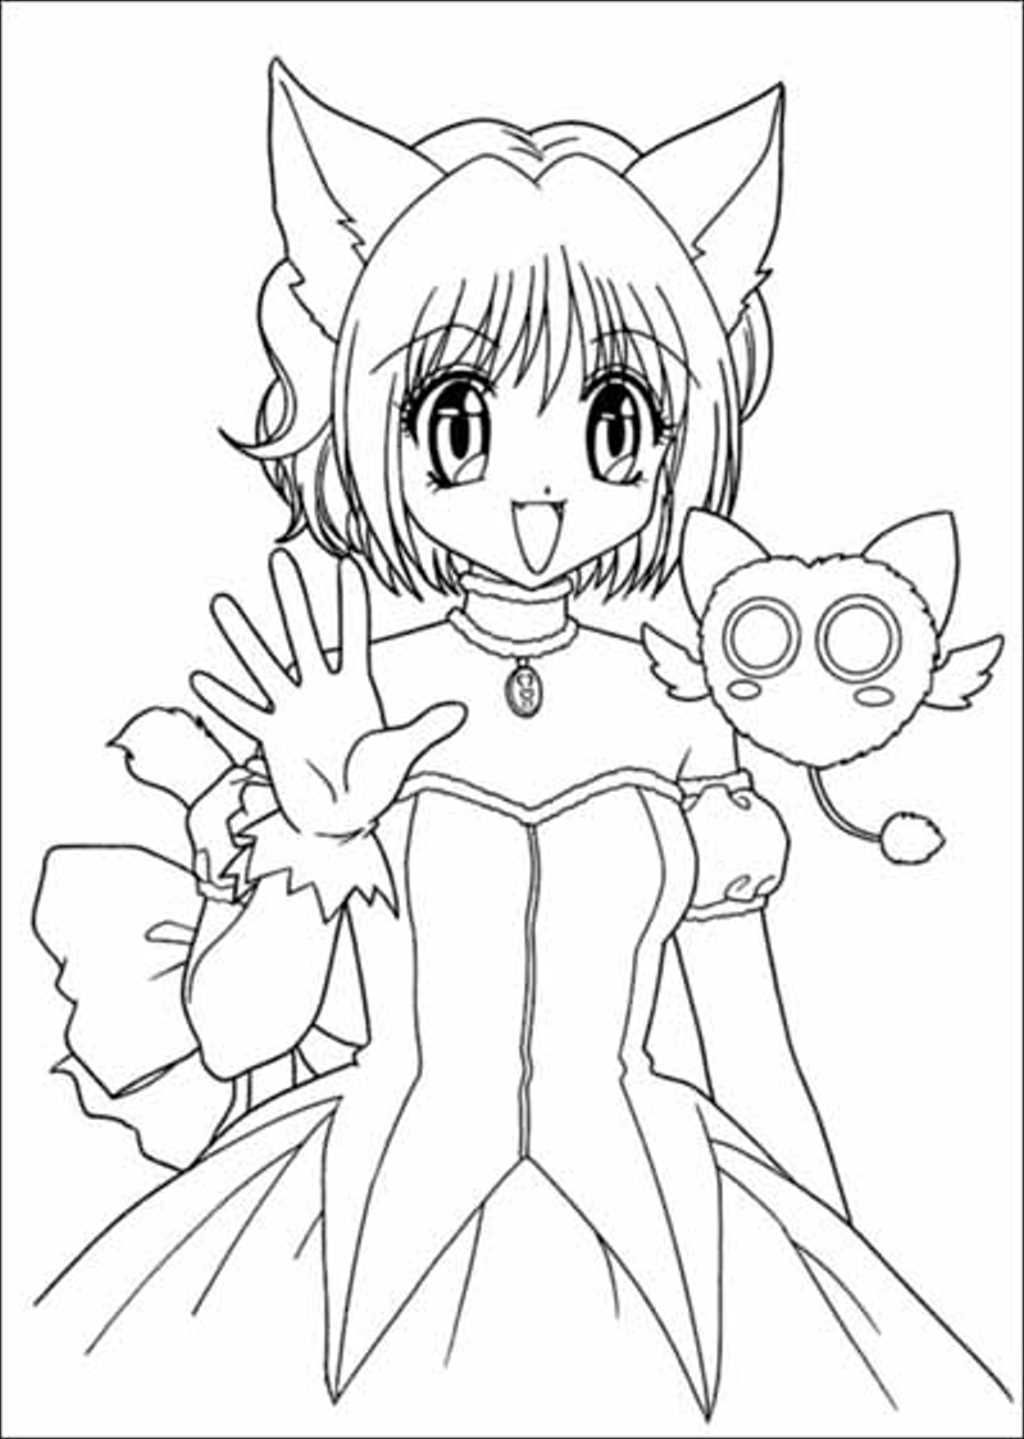 mew mew ichigo greets his friends mew mew coloring pages